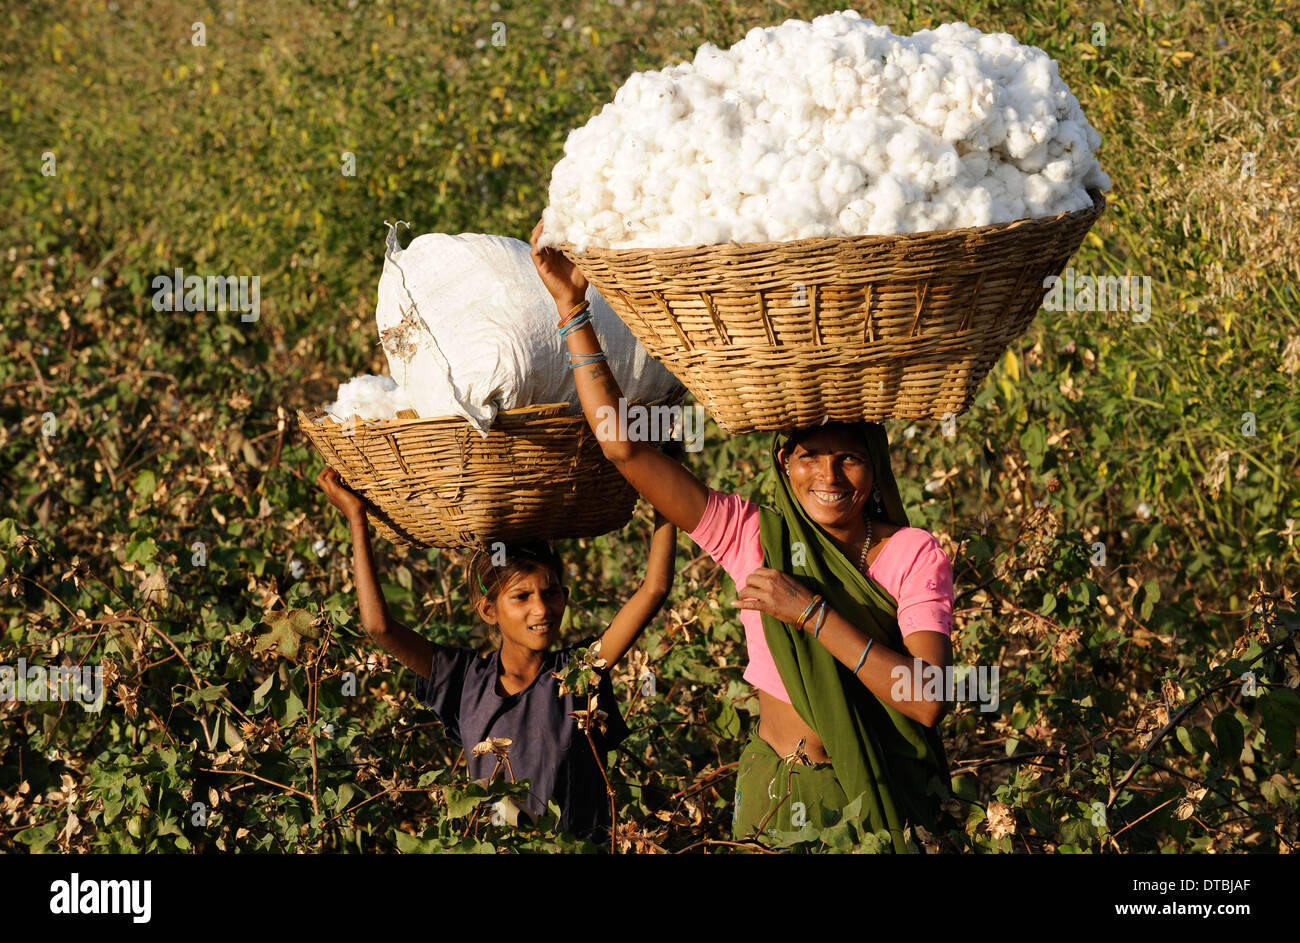 Is Cotton A Natural Resource Of India